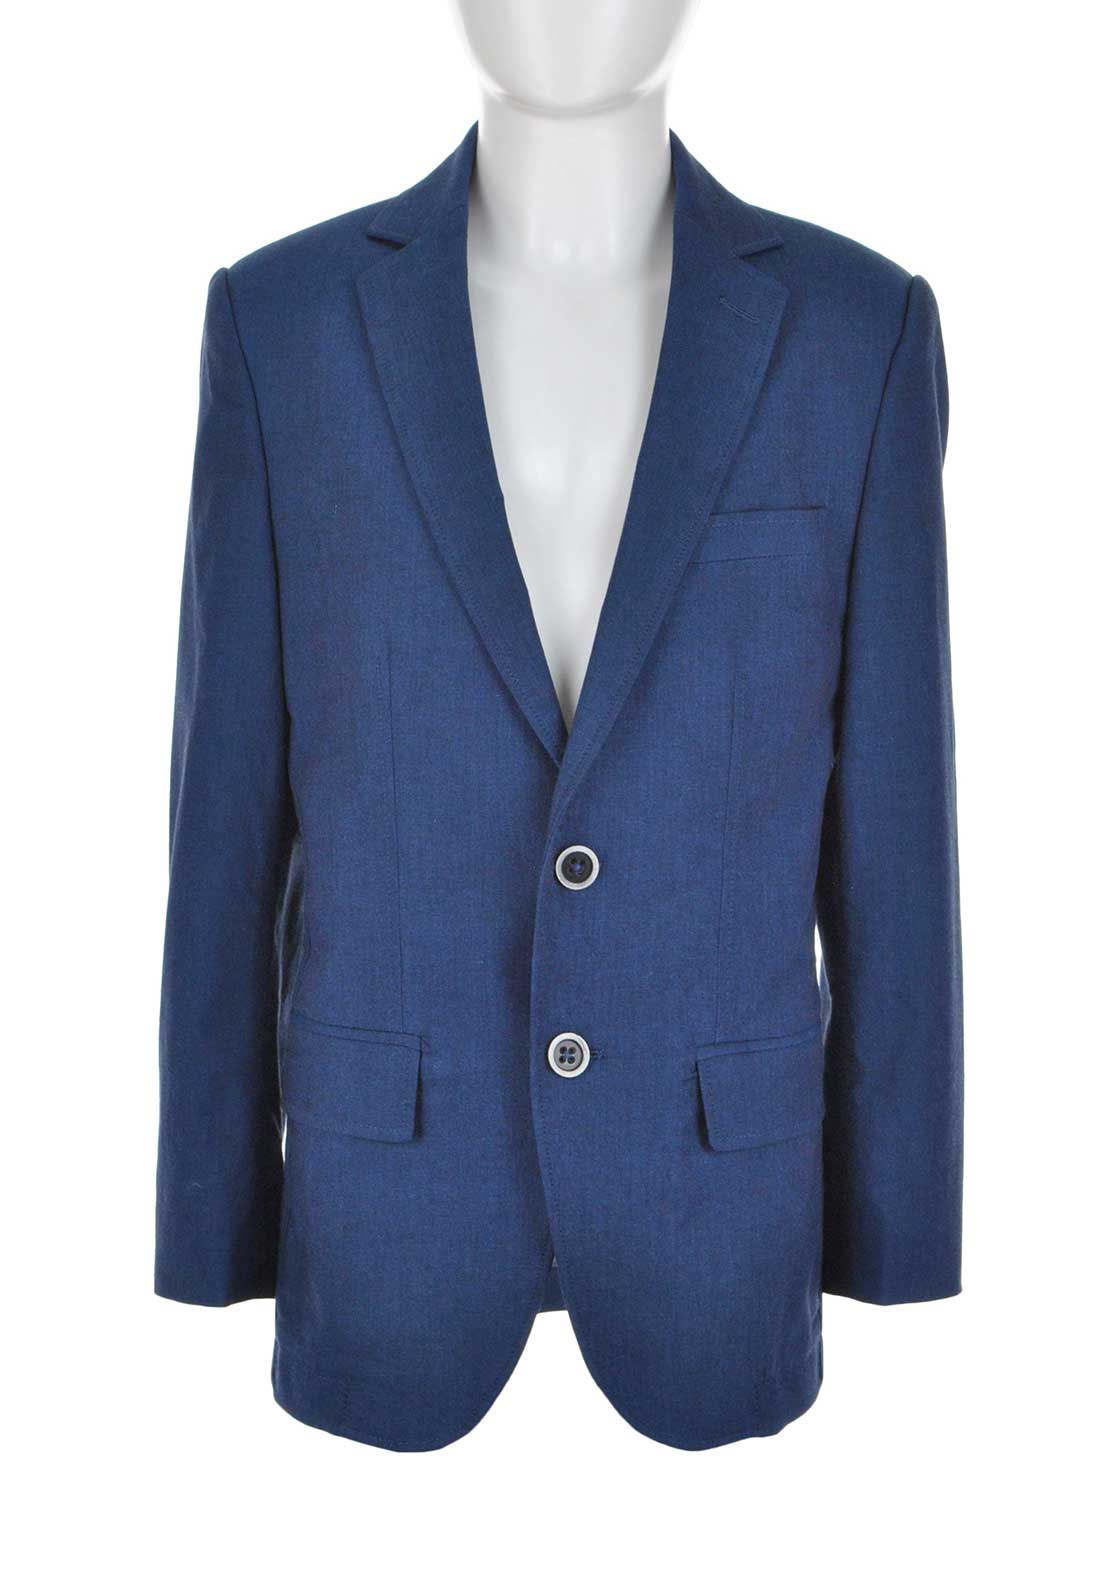 1880 Club Boys Woven Blazer Jacket, Blue